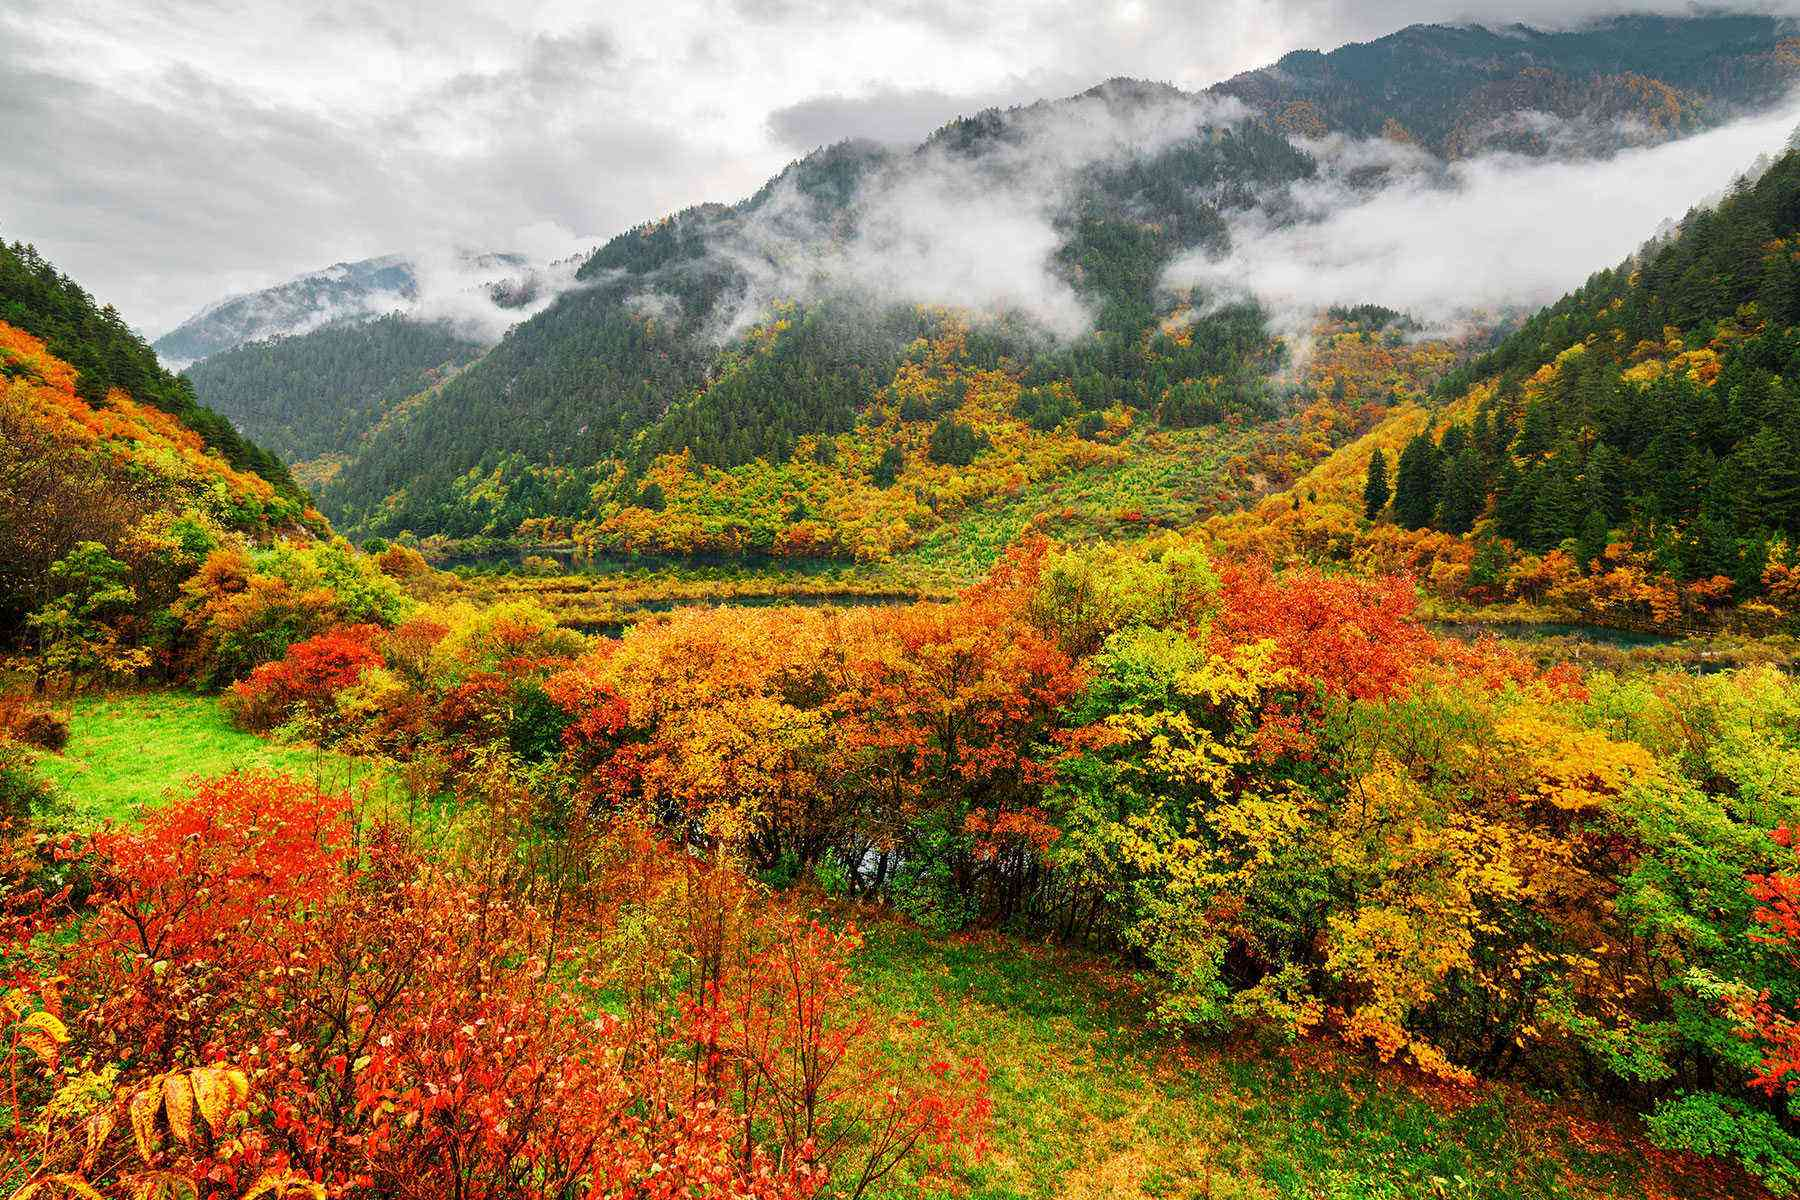 8 scenic spots for leaf peeping in china  u2013 fodors travel guide